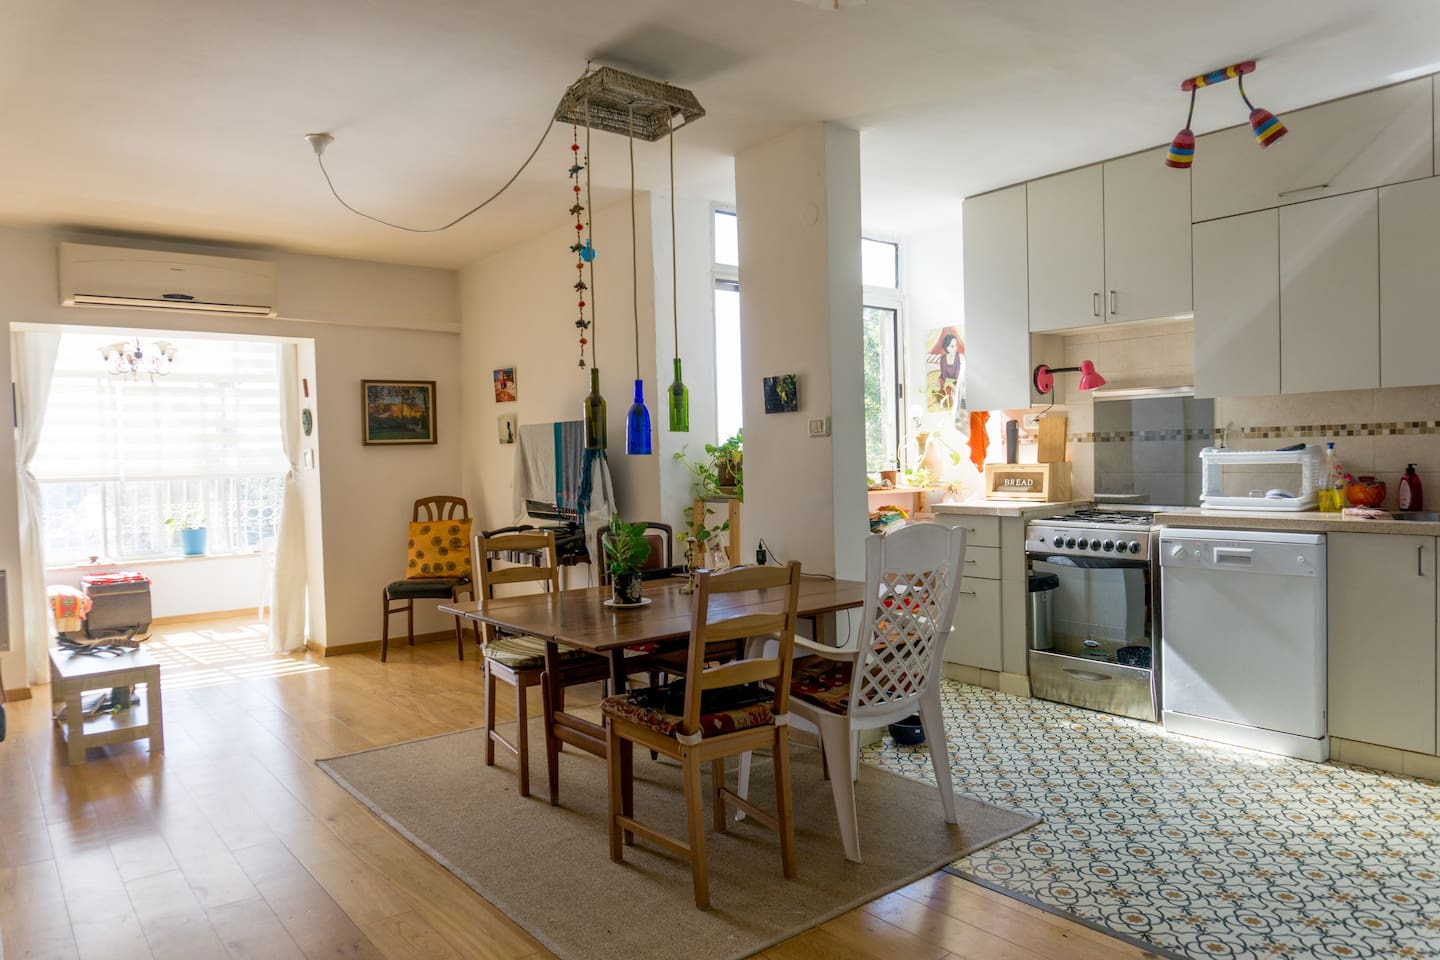 Living, dining and kitchen area, with sunny enclosed balcony.